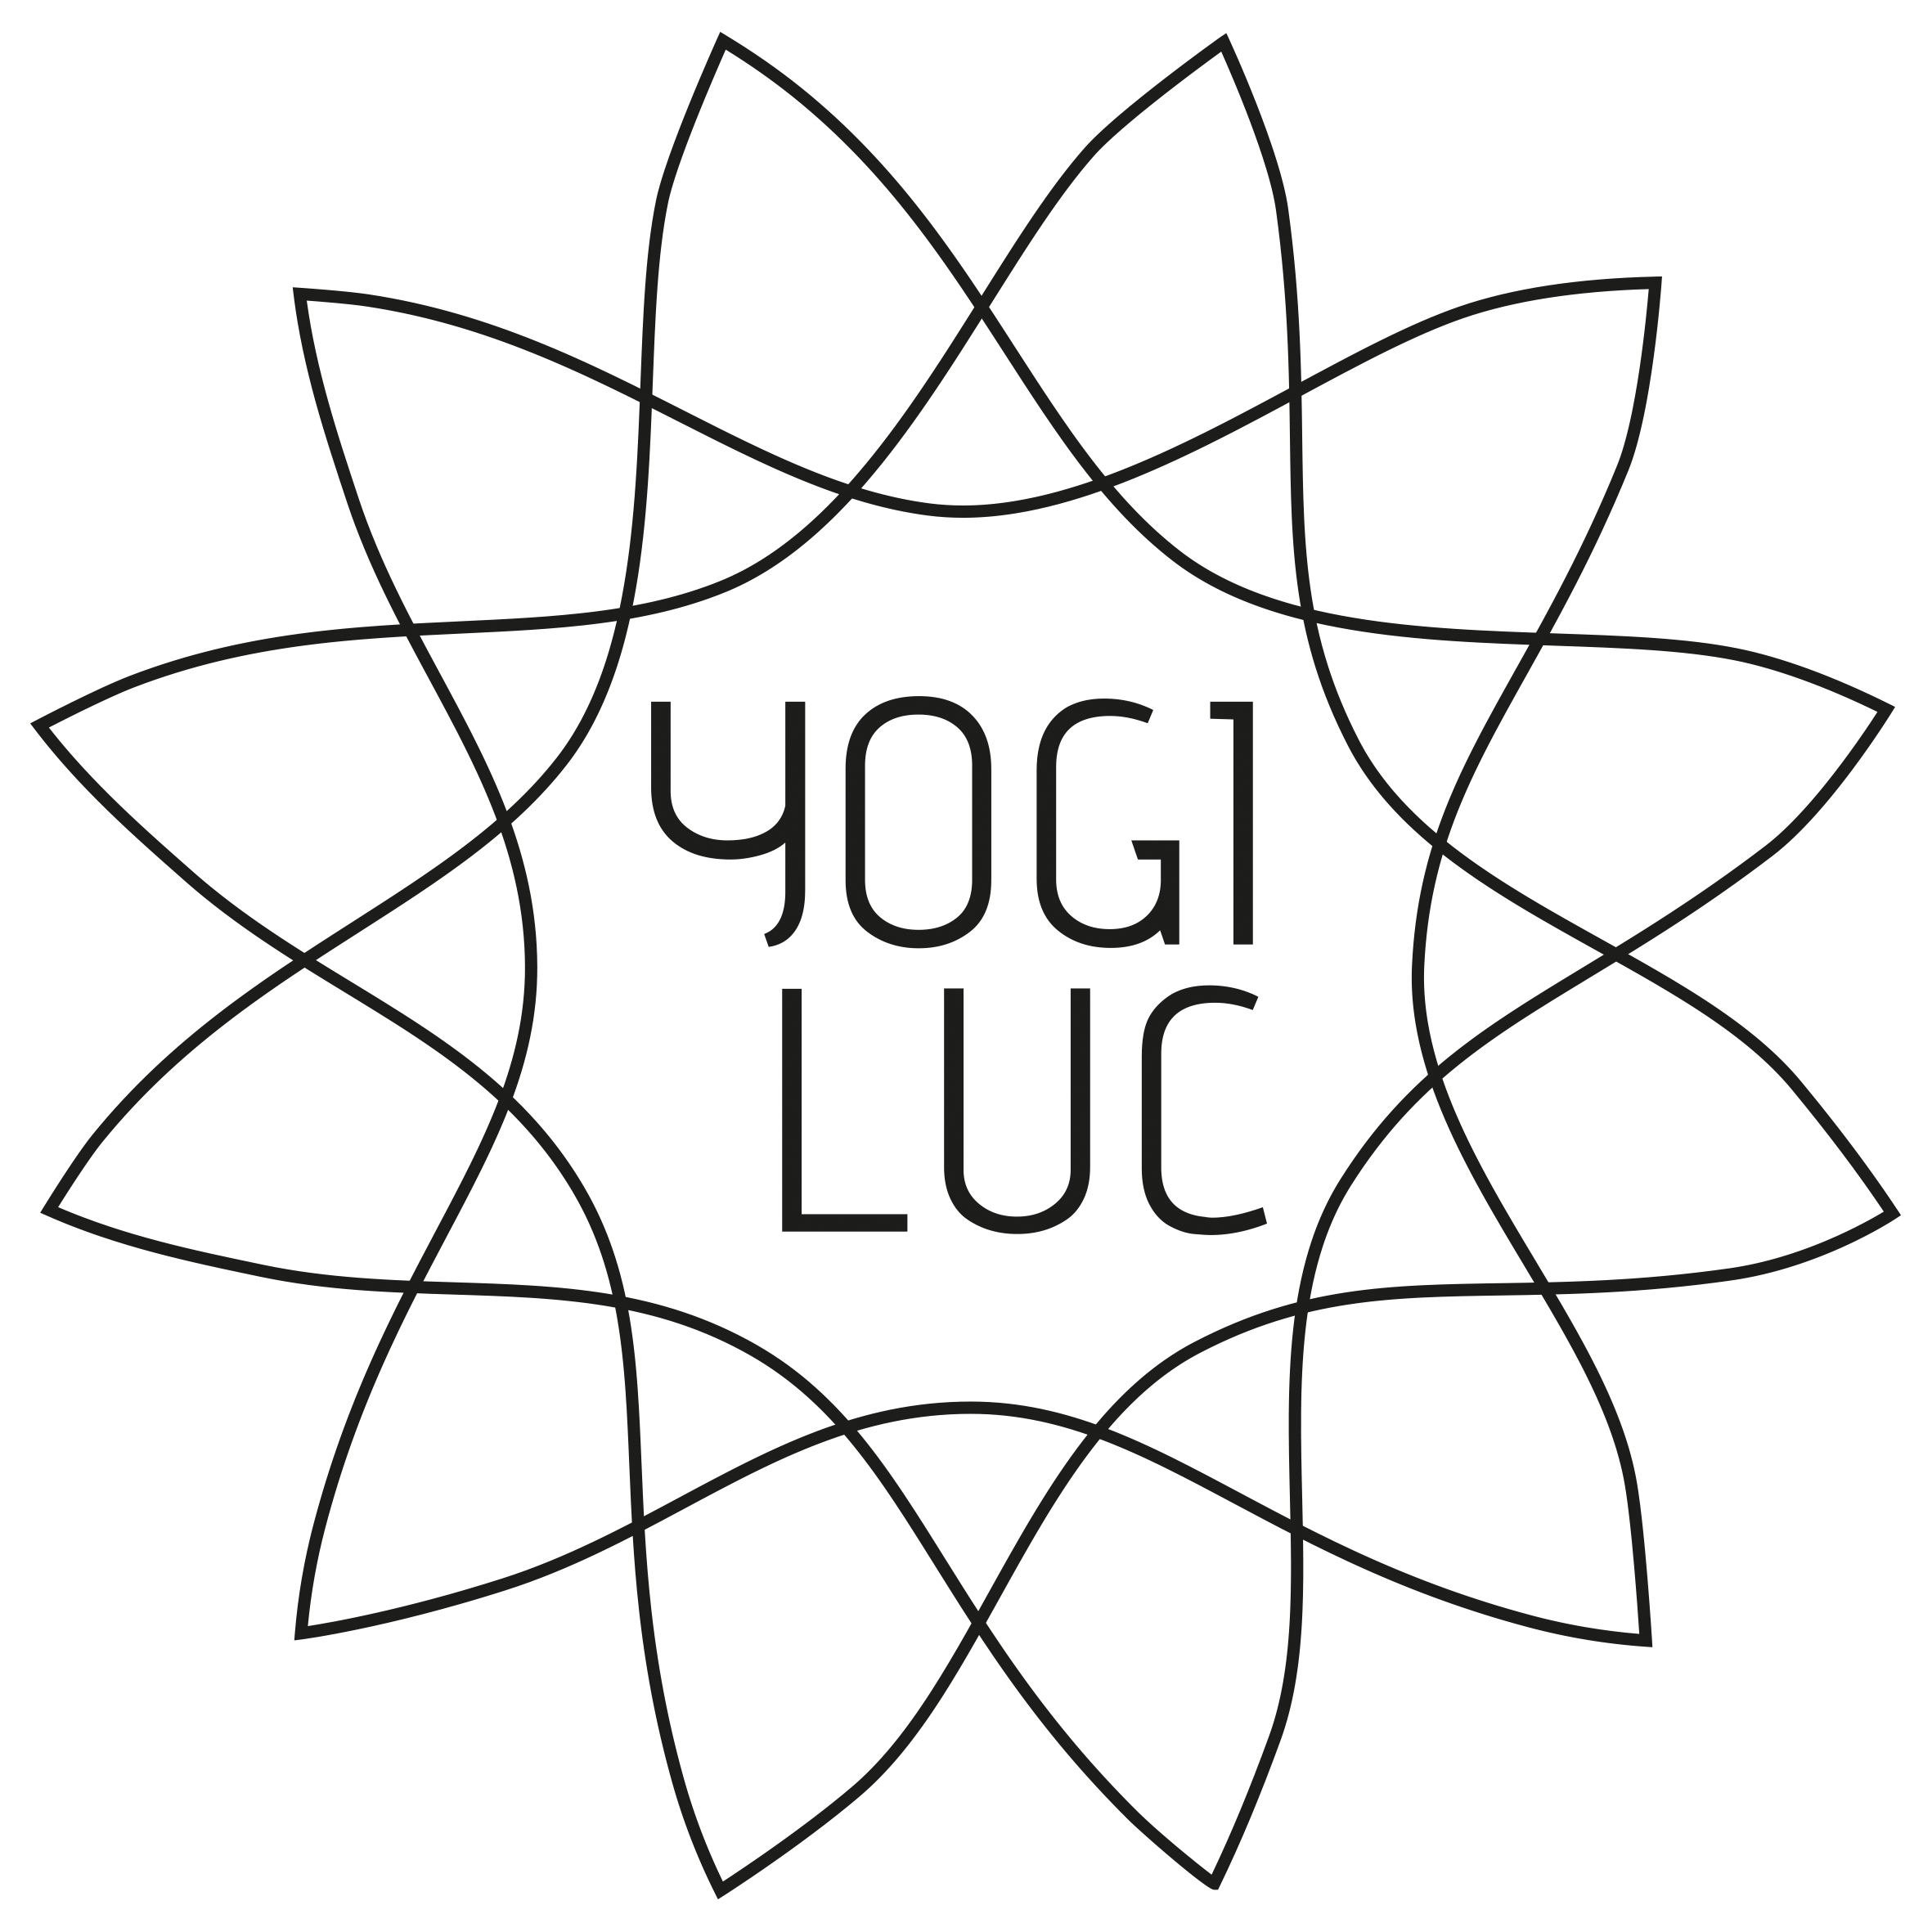 Yogi Luc